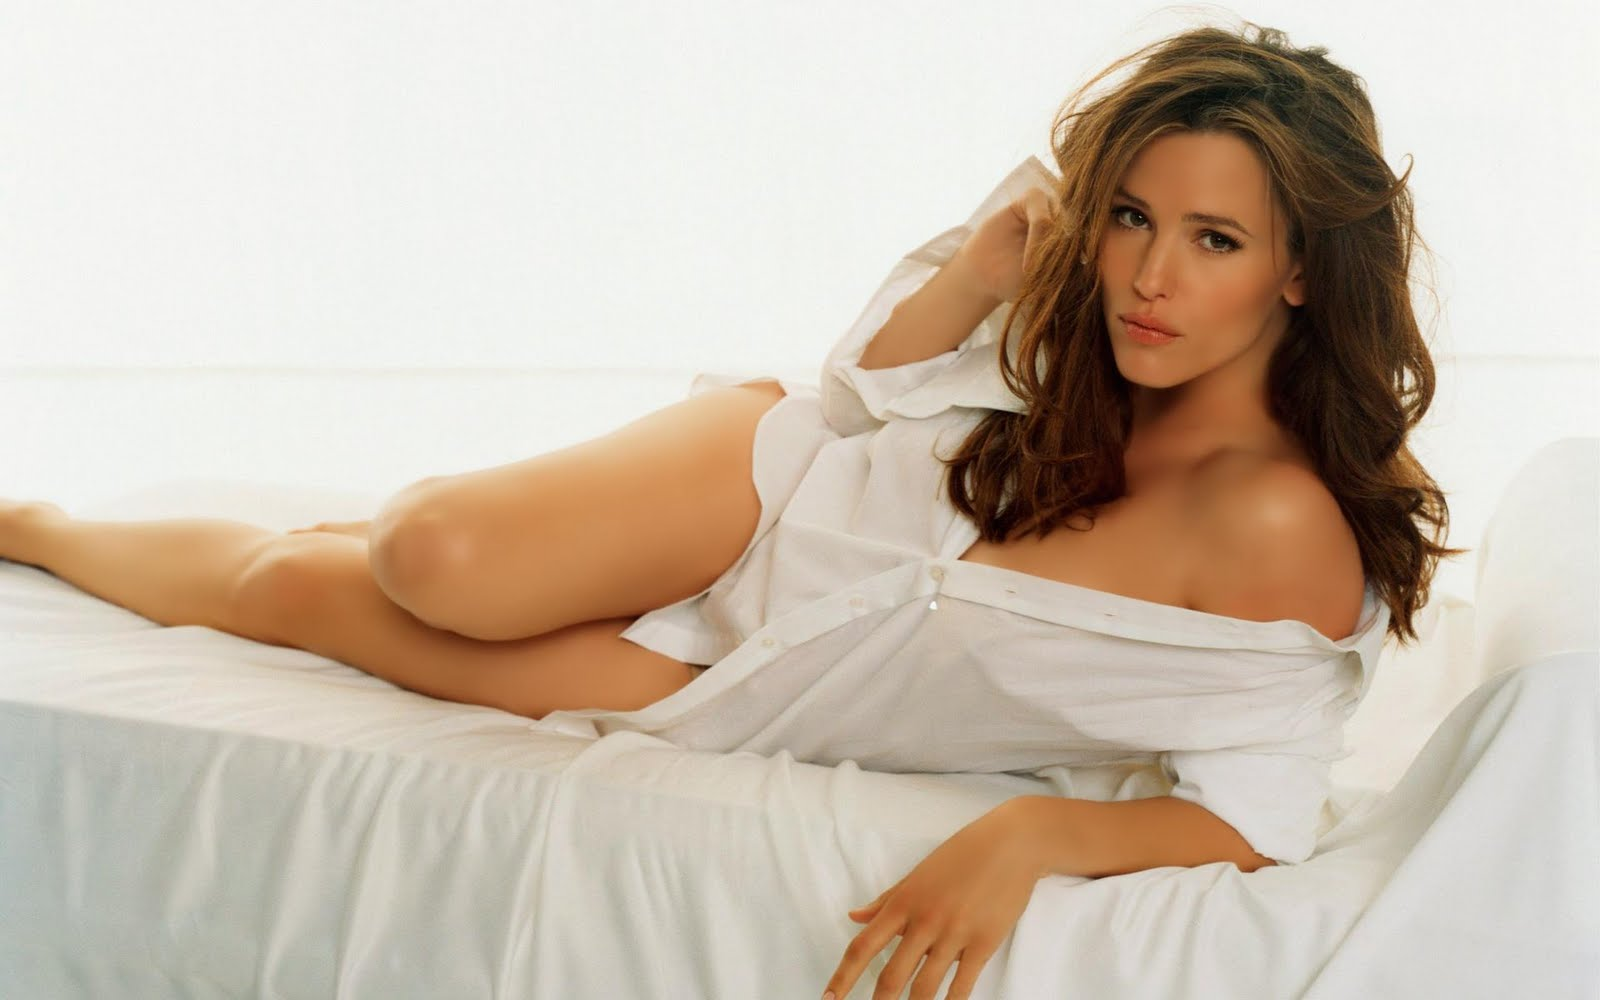 Remarkable, Jennifer garner sexy think, that